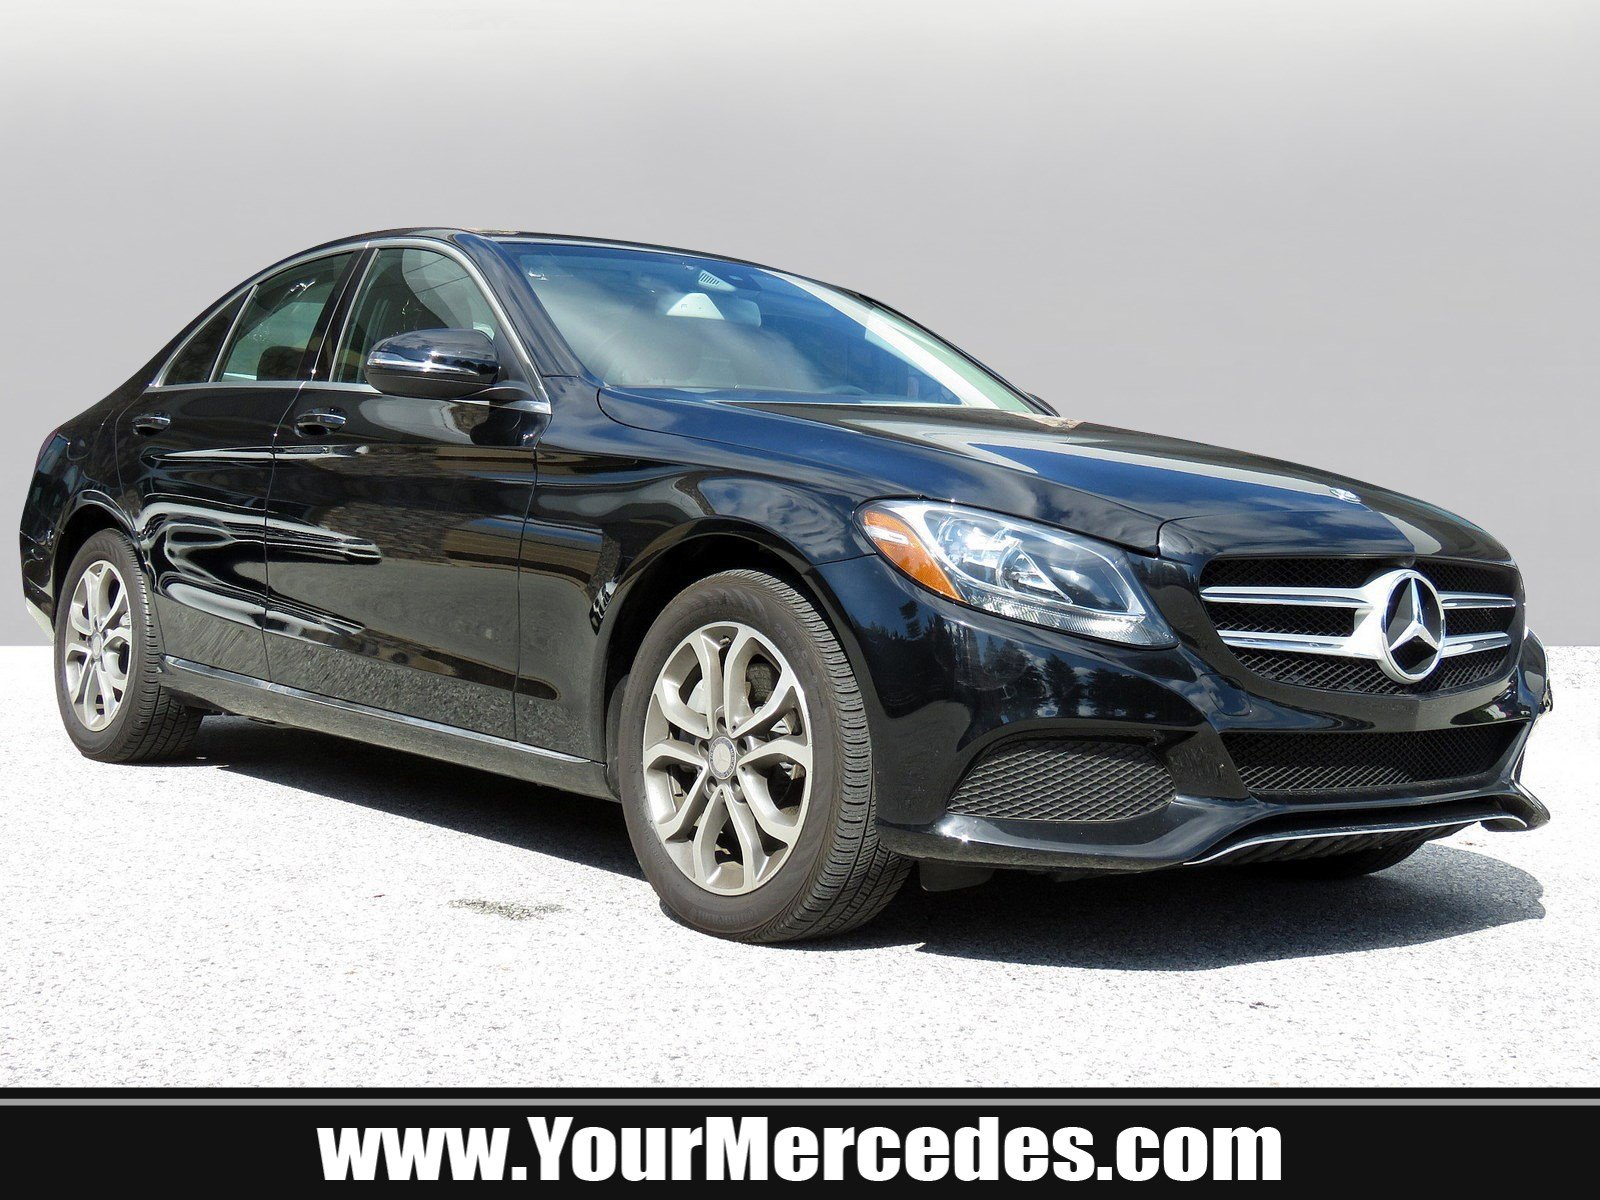 Certified Pre Owned 2016 Mercedes Benz C Class C 300 4dr Car in Fort